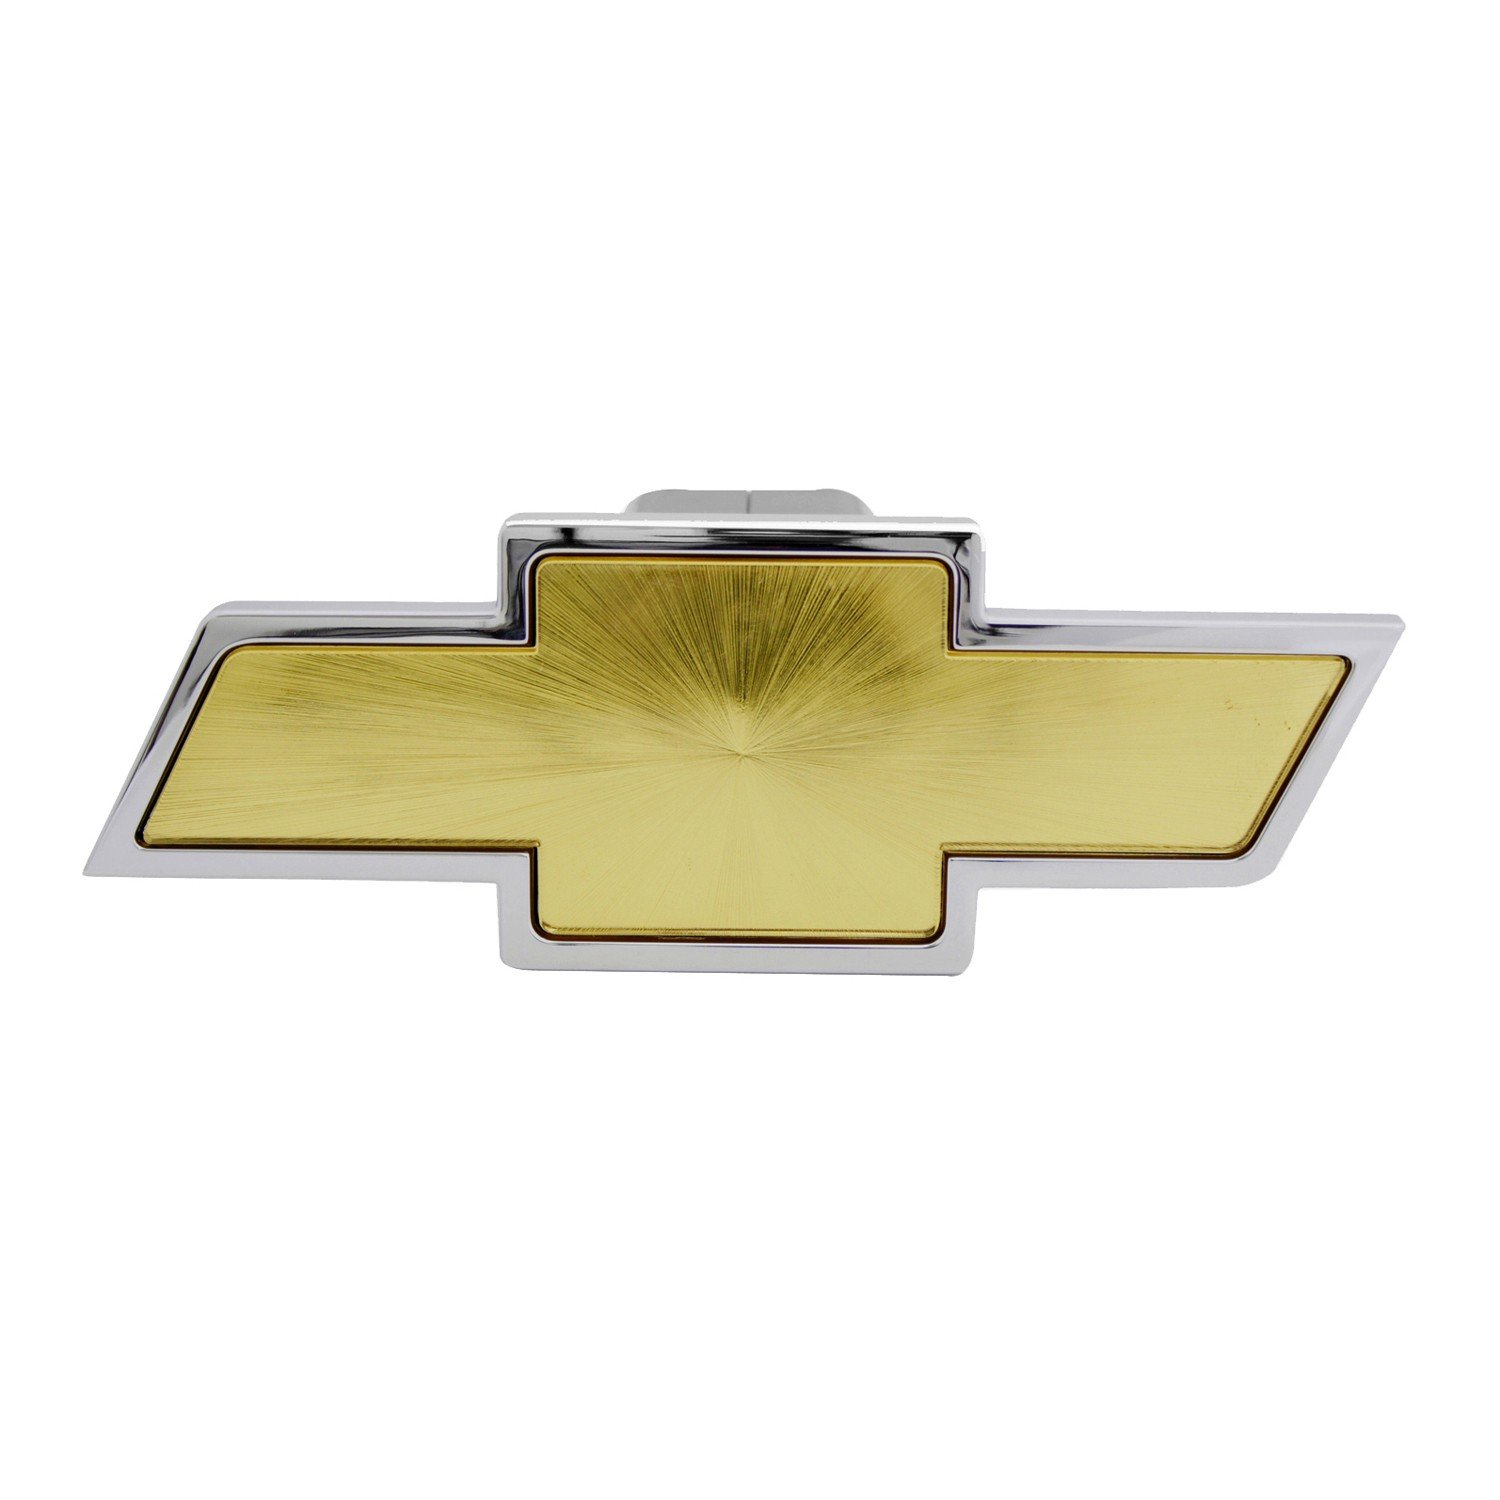 Trailer Hitch Receiver Cover, 2 Trailer Chevy Truck Cover Hitch 2in And 1-1/4in Super Automotive